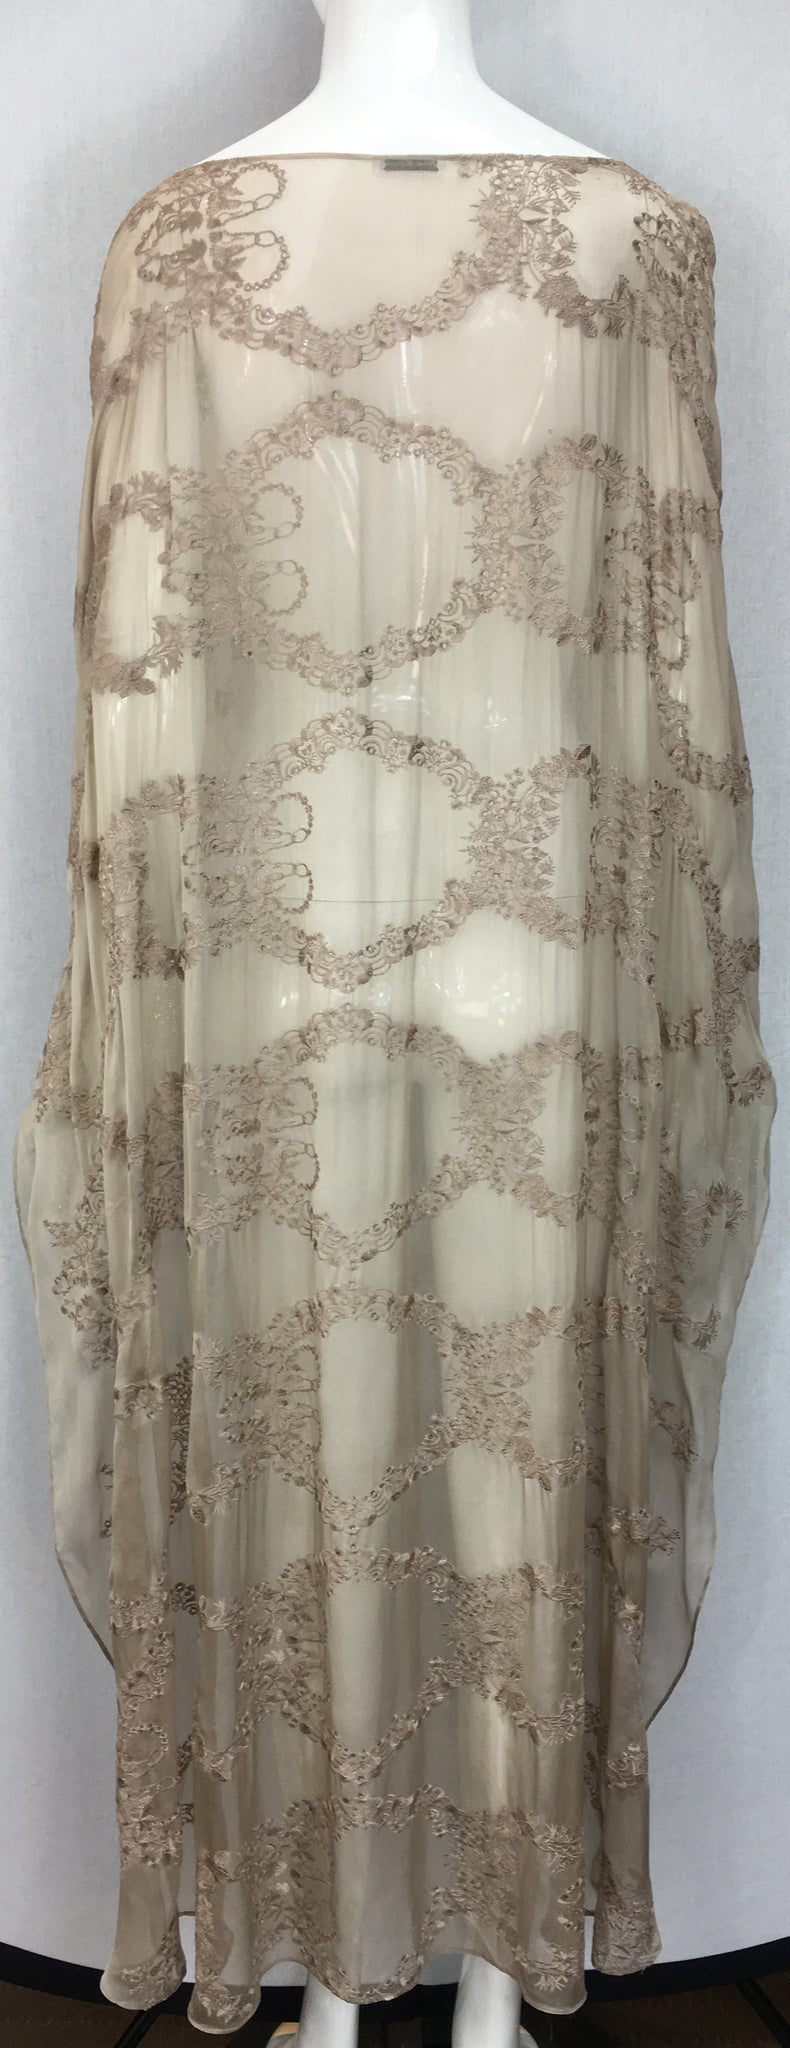 Janet Deleuse Embroidered Silk Chiffon Cape with Fringe, SALE, SOLD